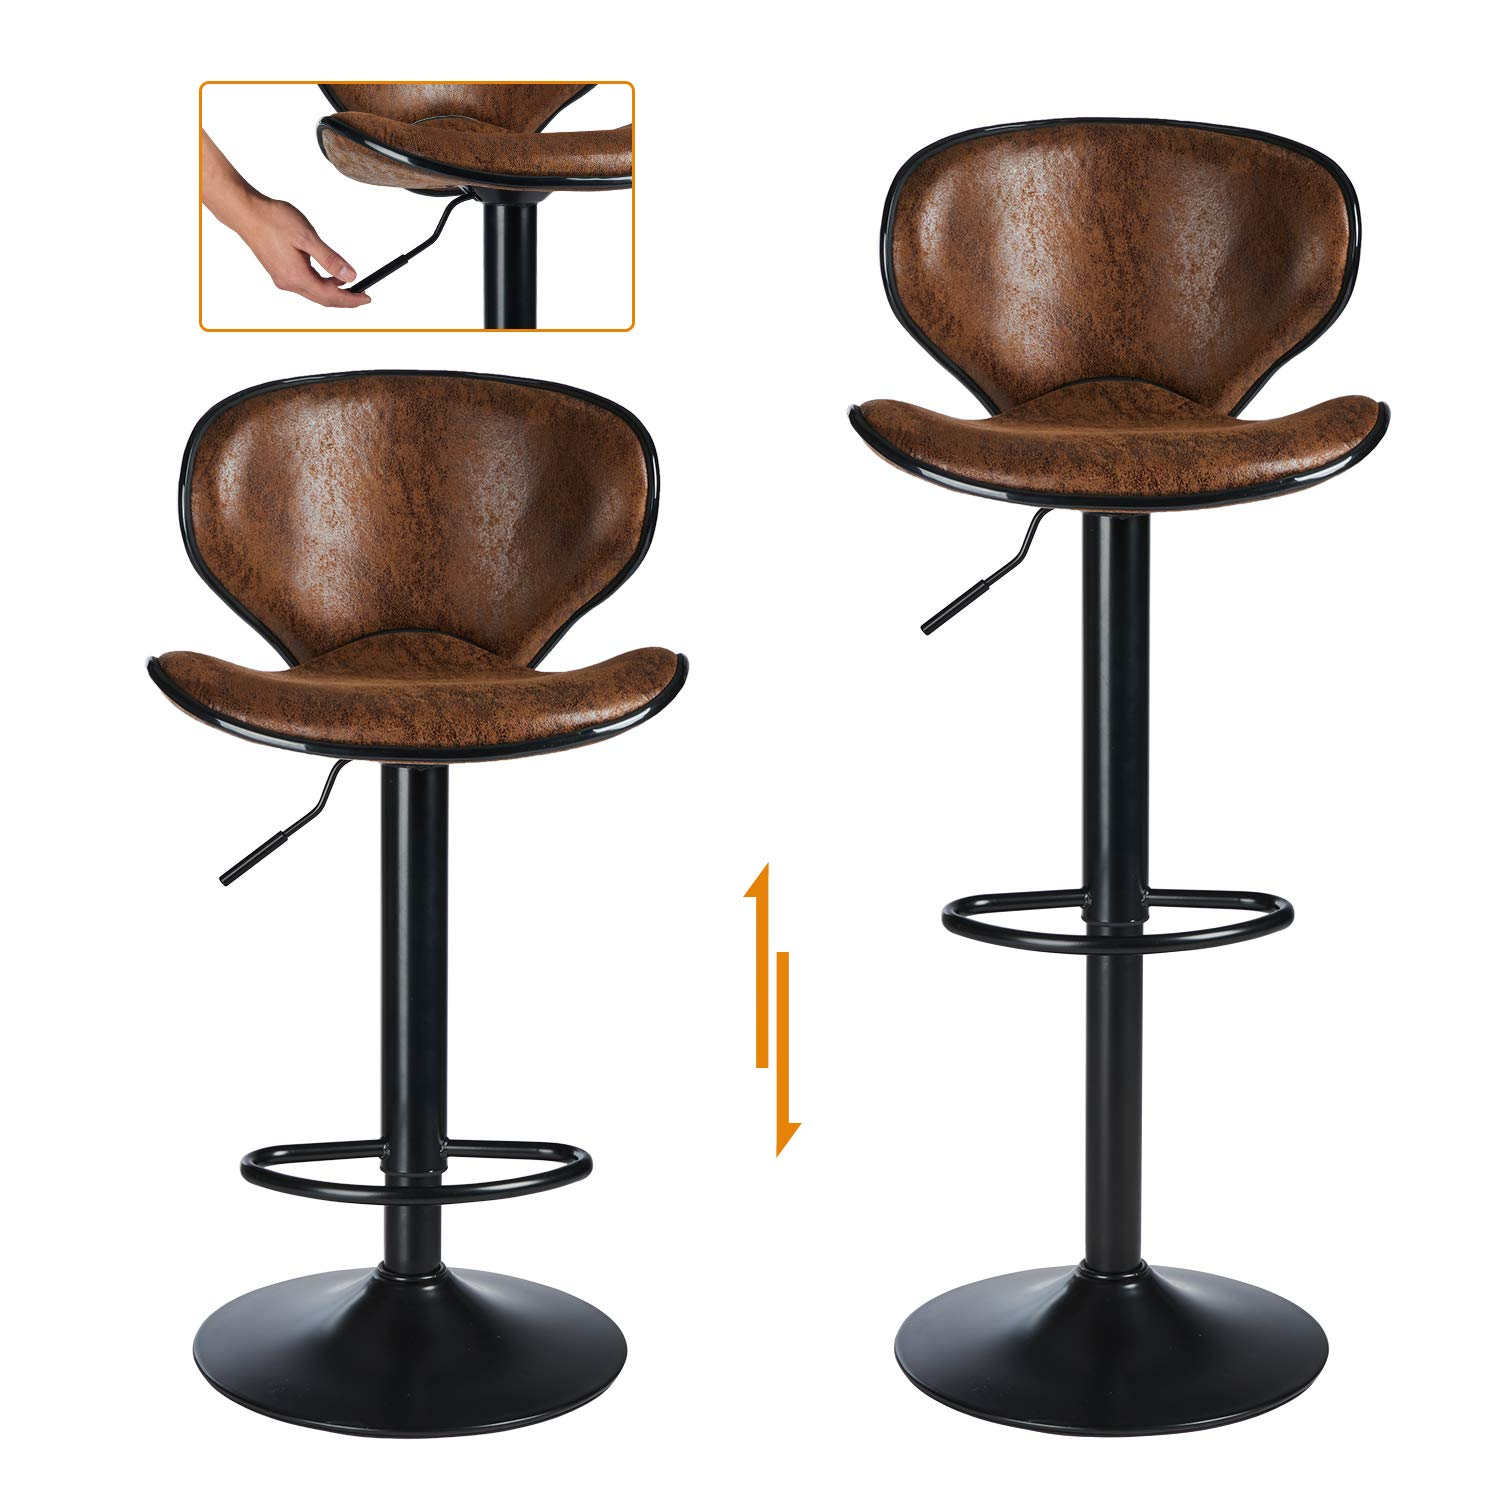 Vintage Bar Stools Set of 10 leather Bar Stools pair for Kitchens, Bar  Stools, Bar Chairs Breakfast Bar Stools, Adjustable height Bar Stool 10 to  10